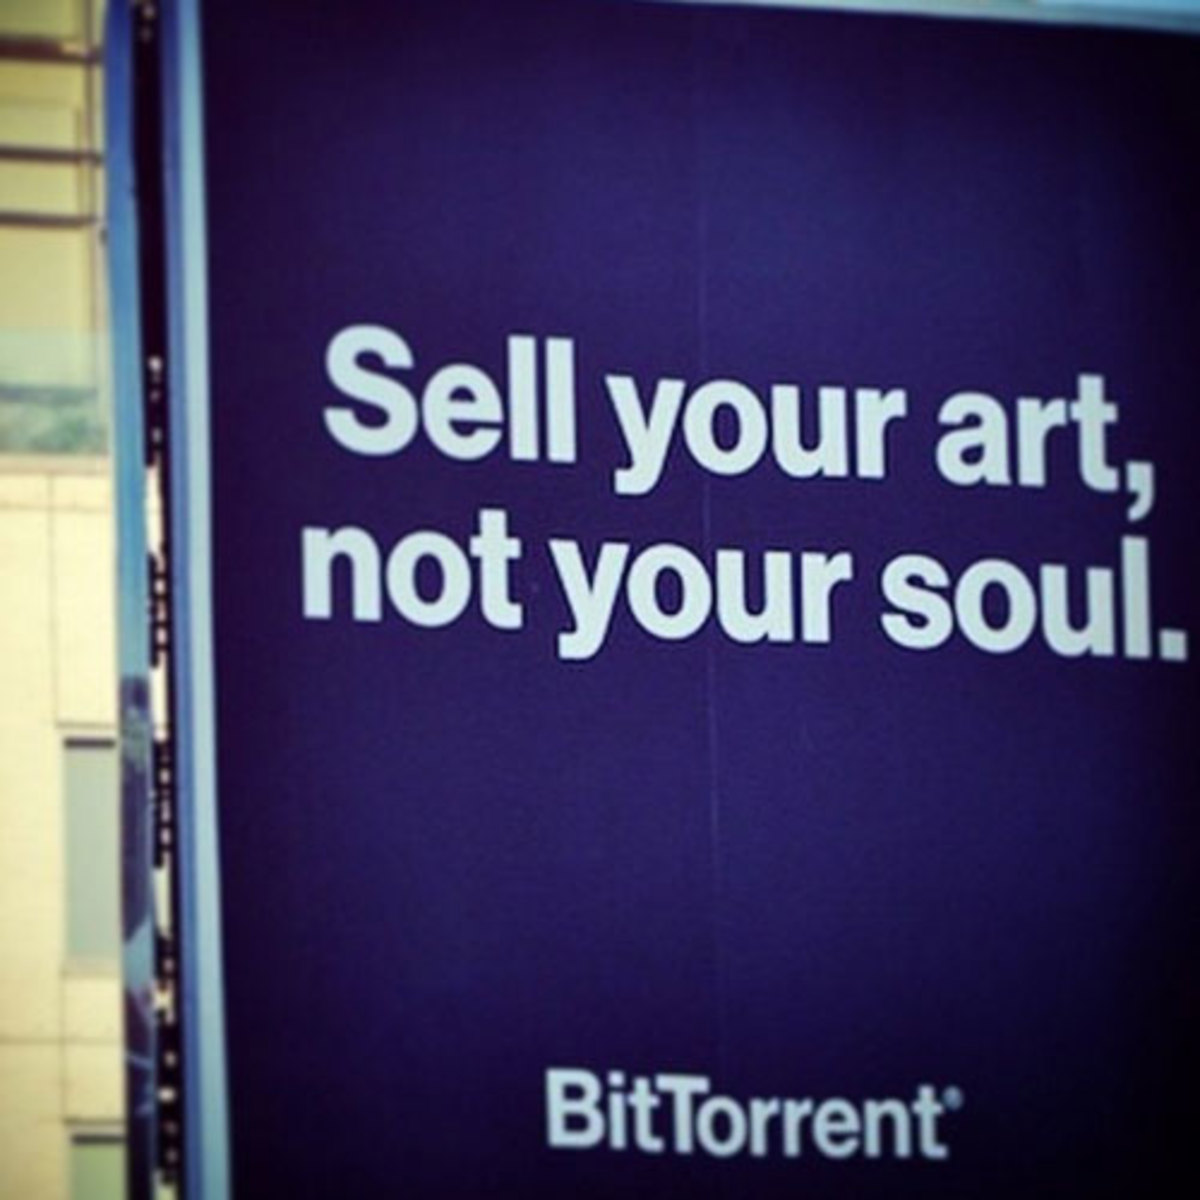 bittorrent-soul-art.jpg